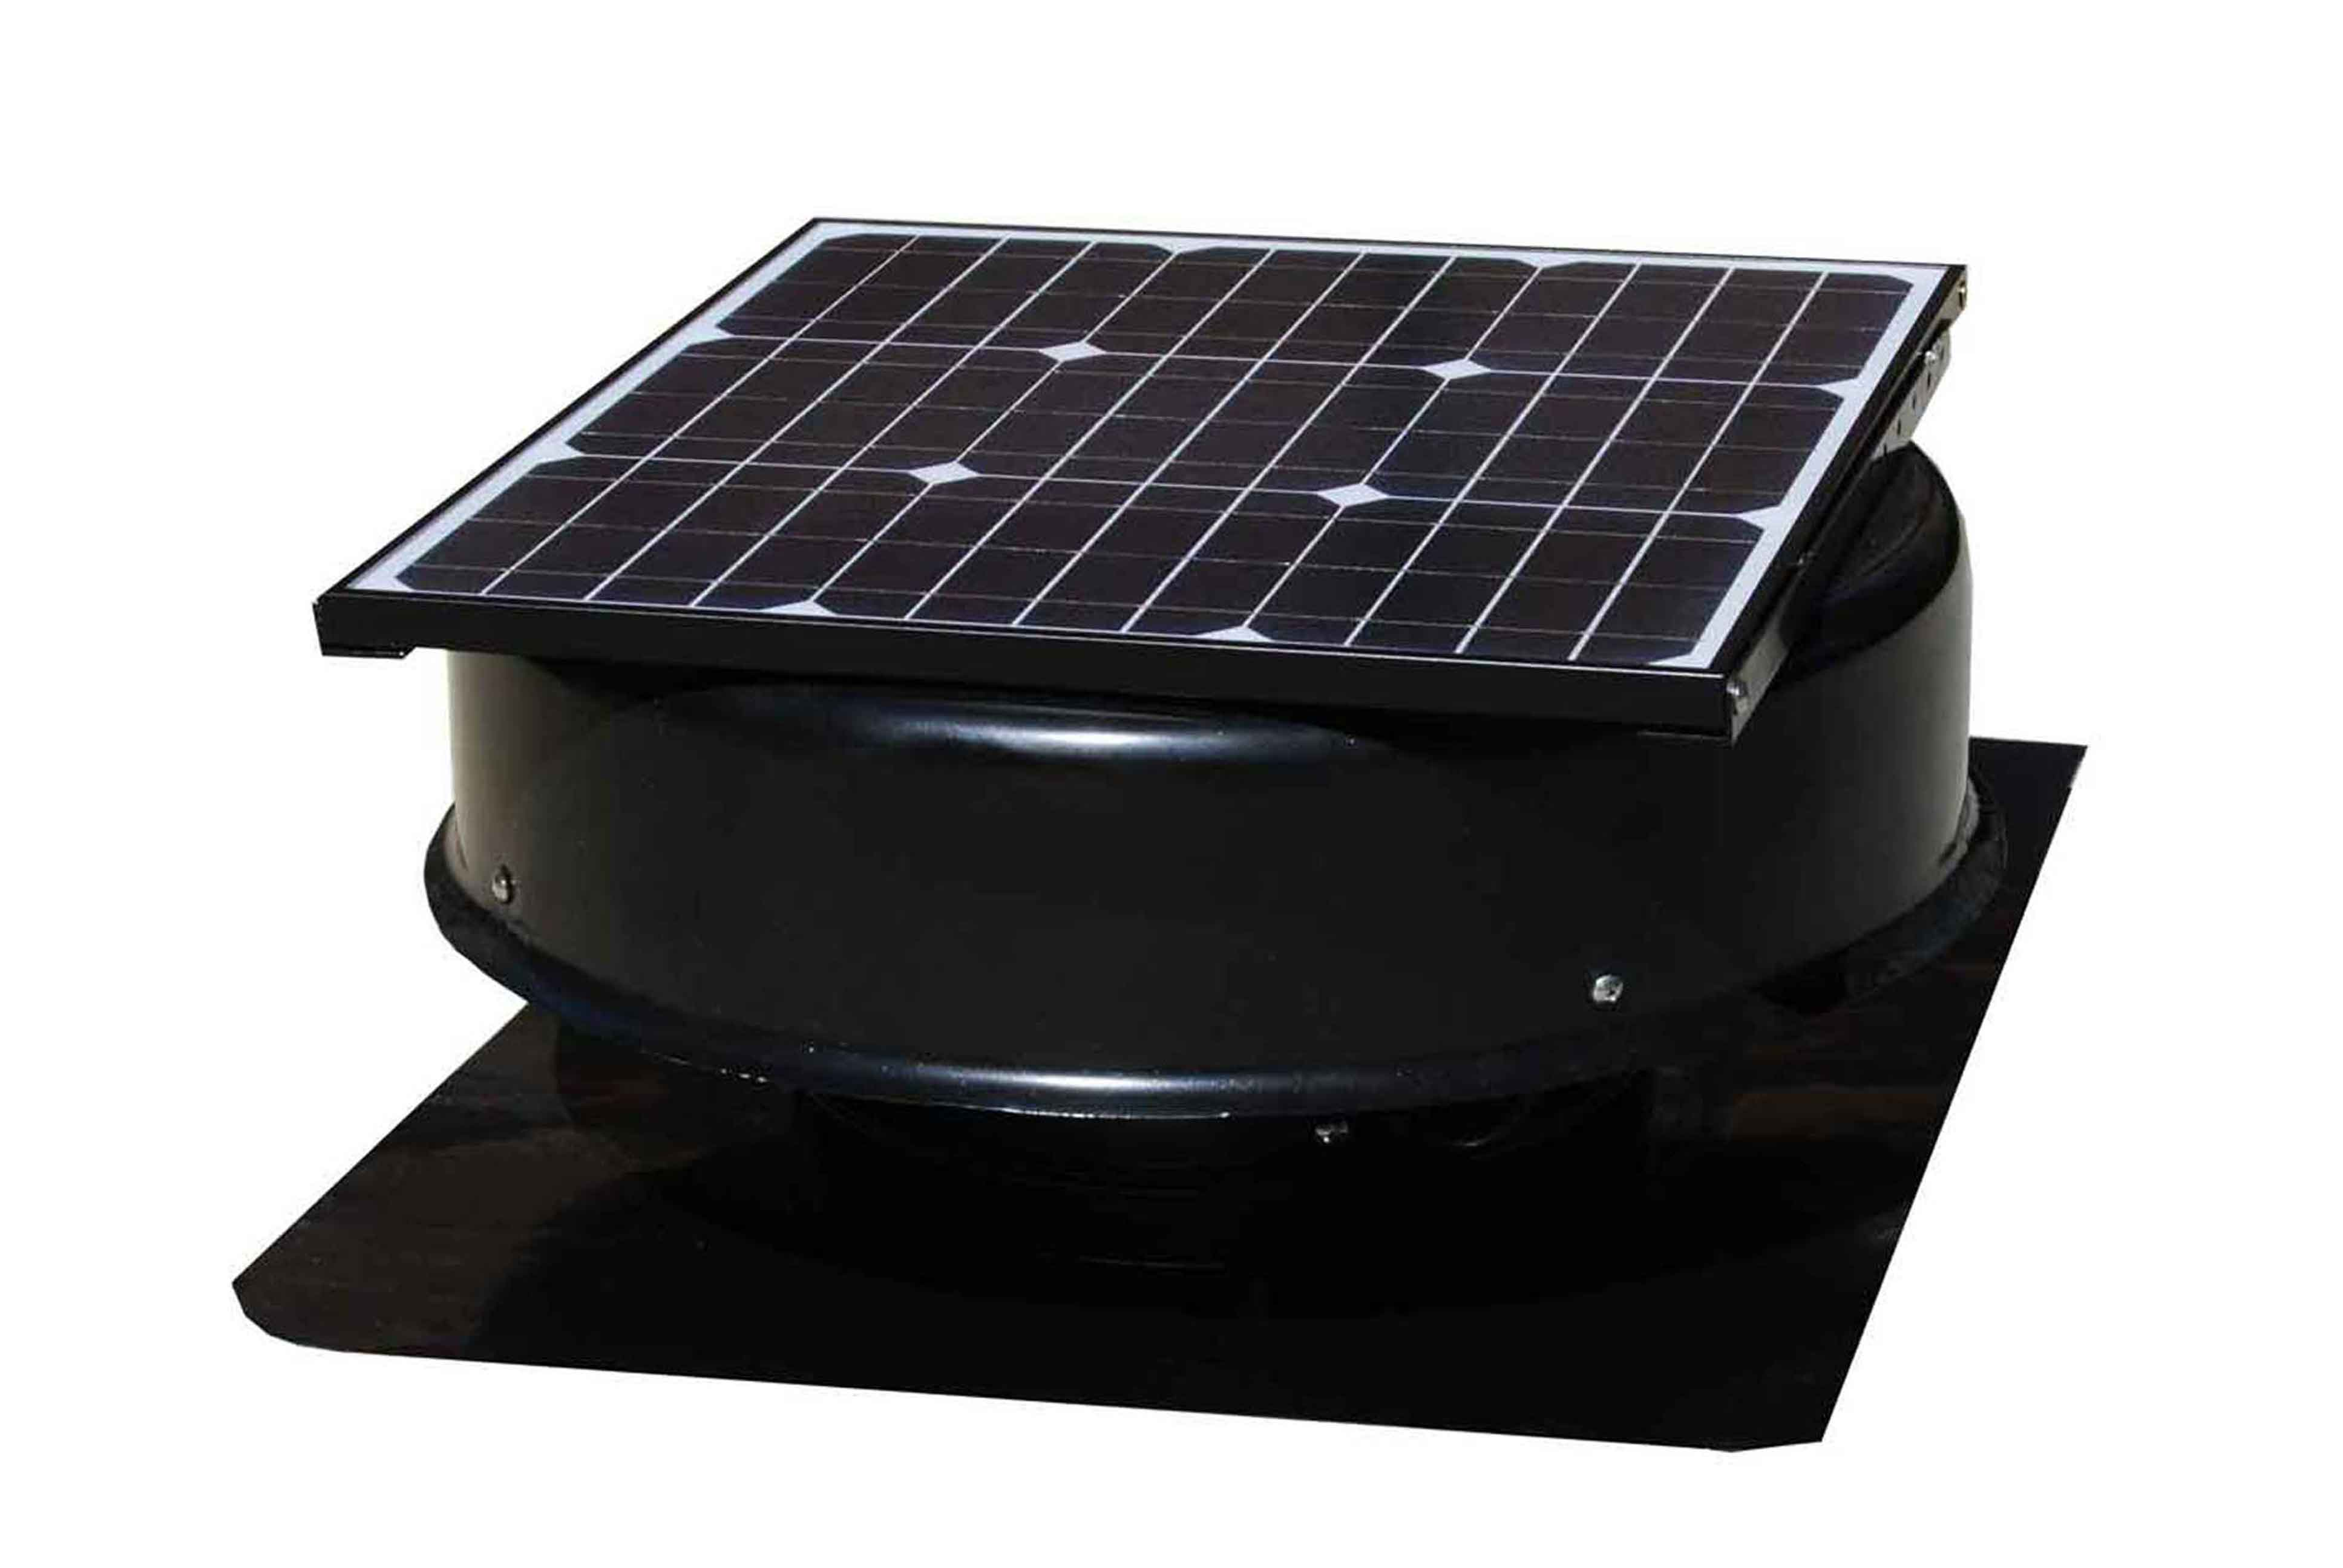 Solar Roof Vent Roof Ventilation For Homes And Sheds